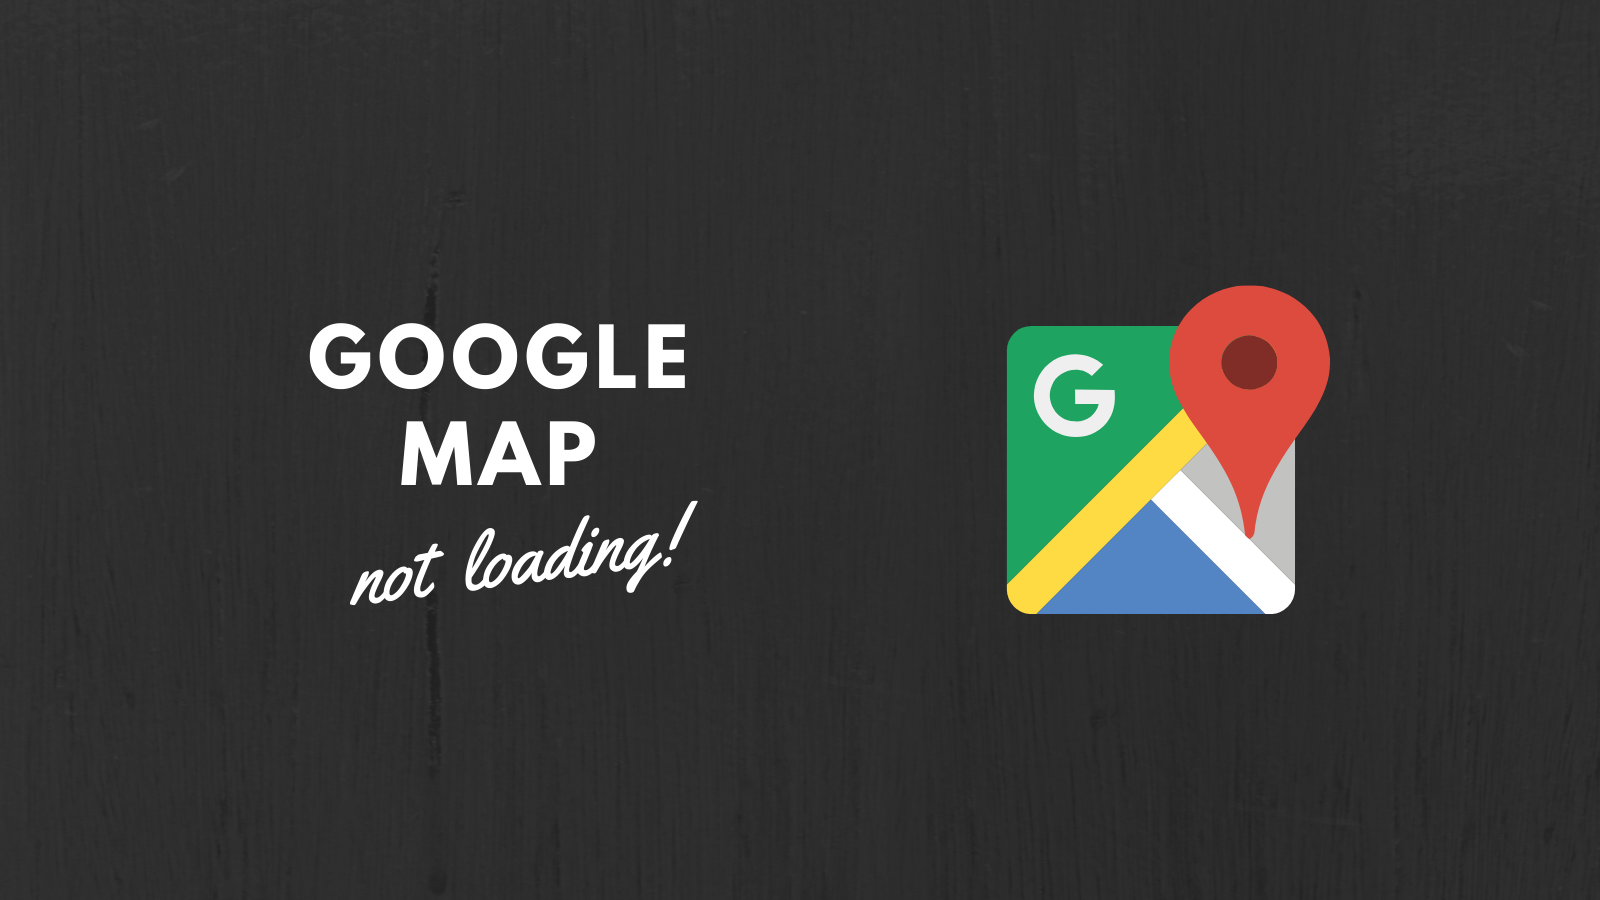 How to Fix Google Maps Not Loading?